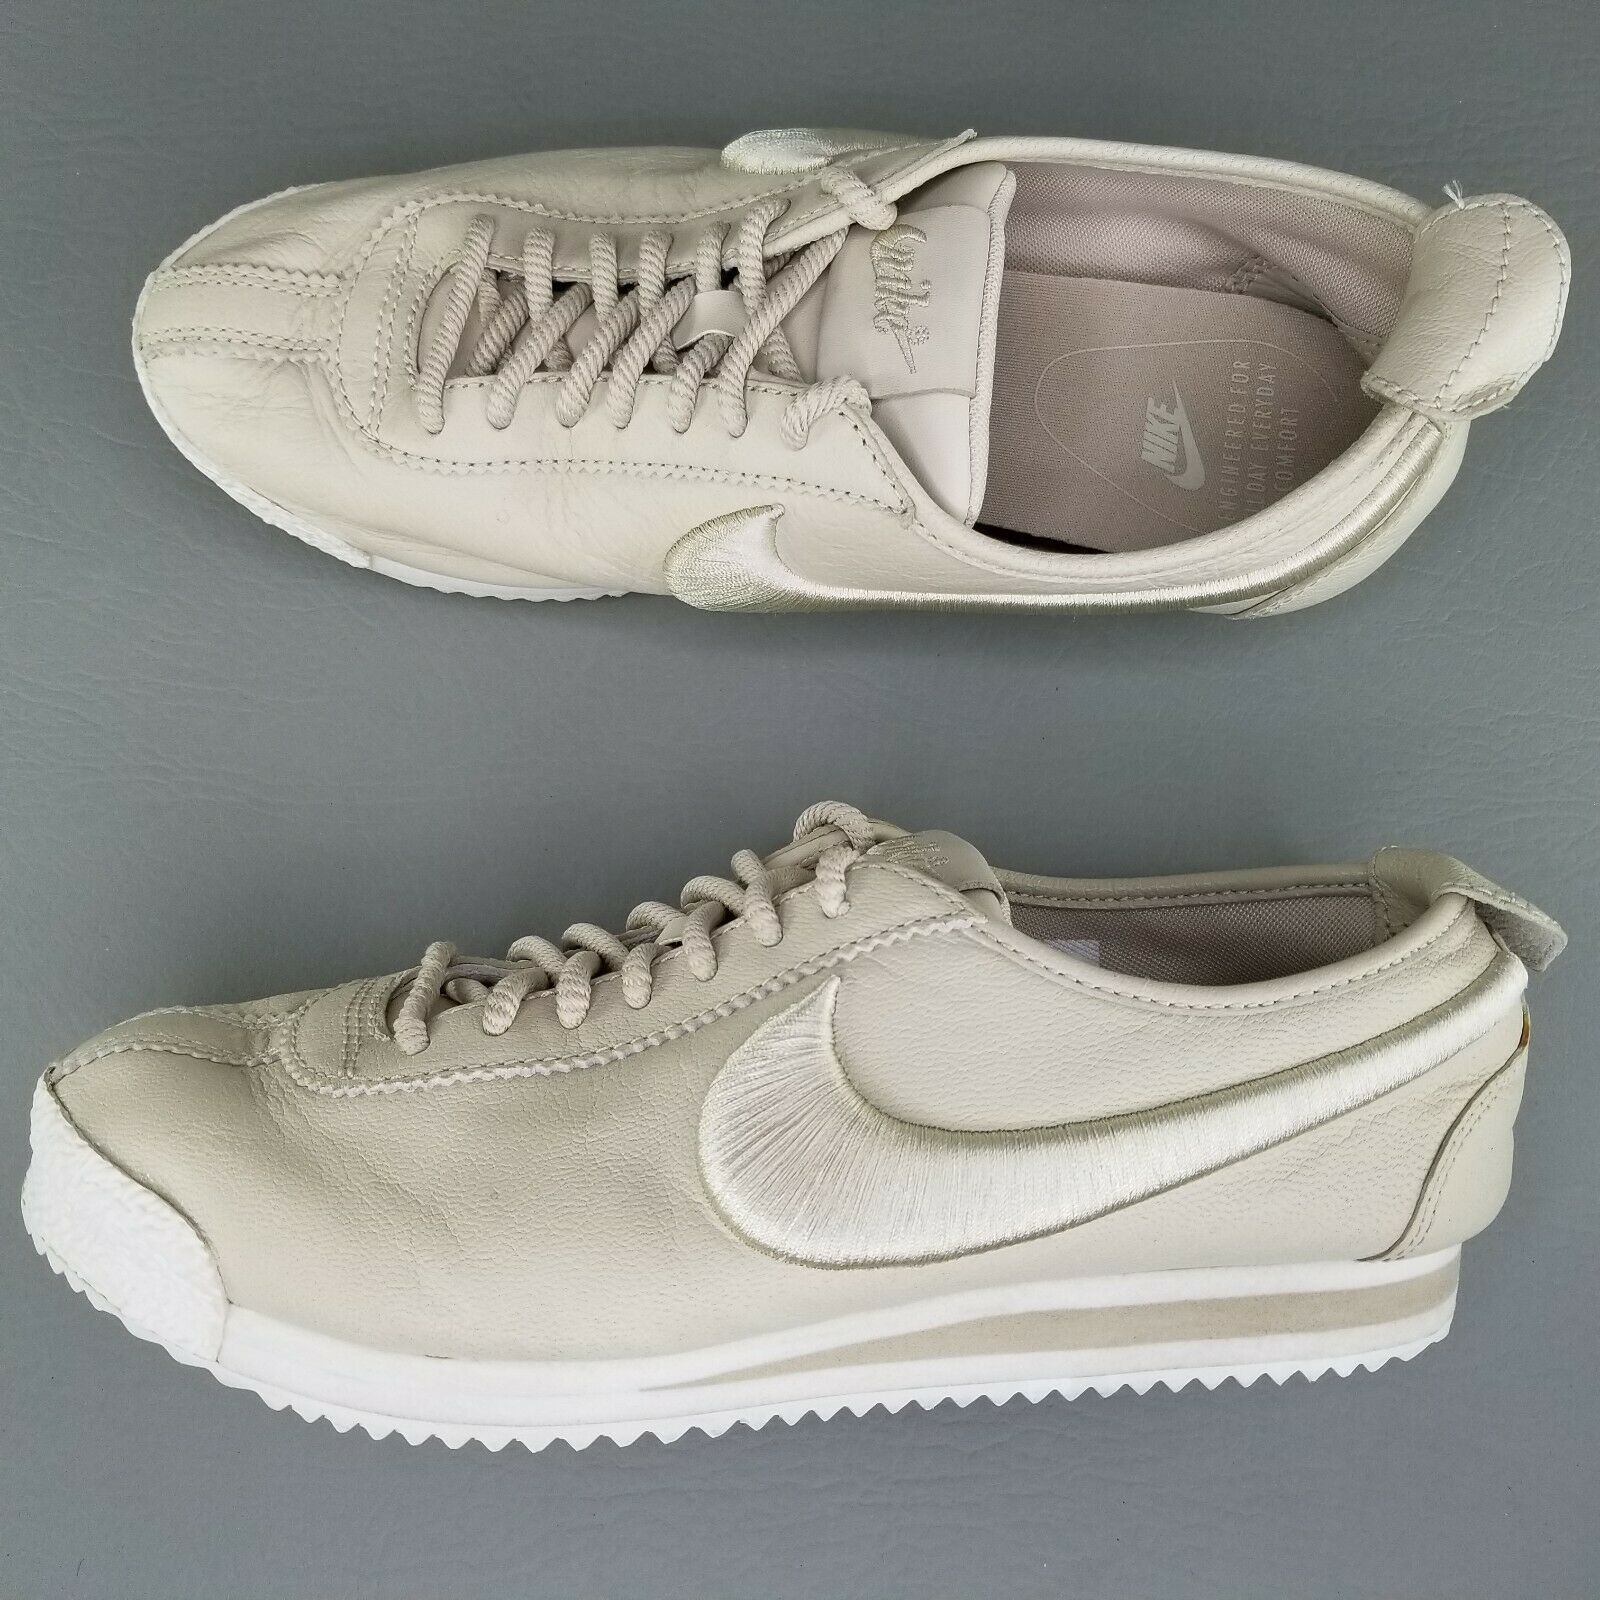 Nike Cortez 72 SI Athletic Shoes Womens Size 8 Leather Sneakers Tan White